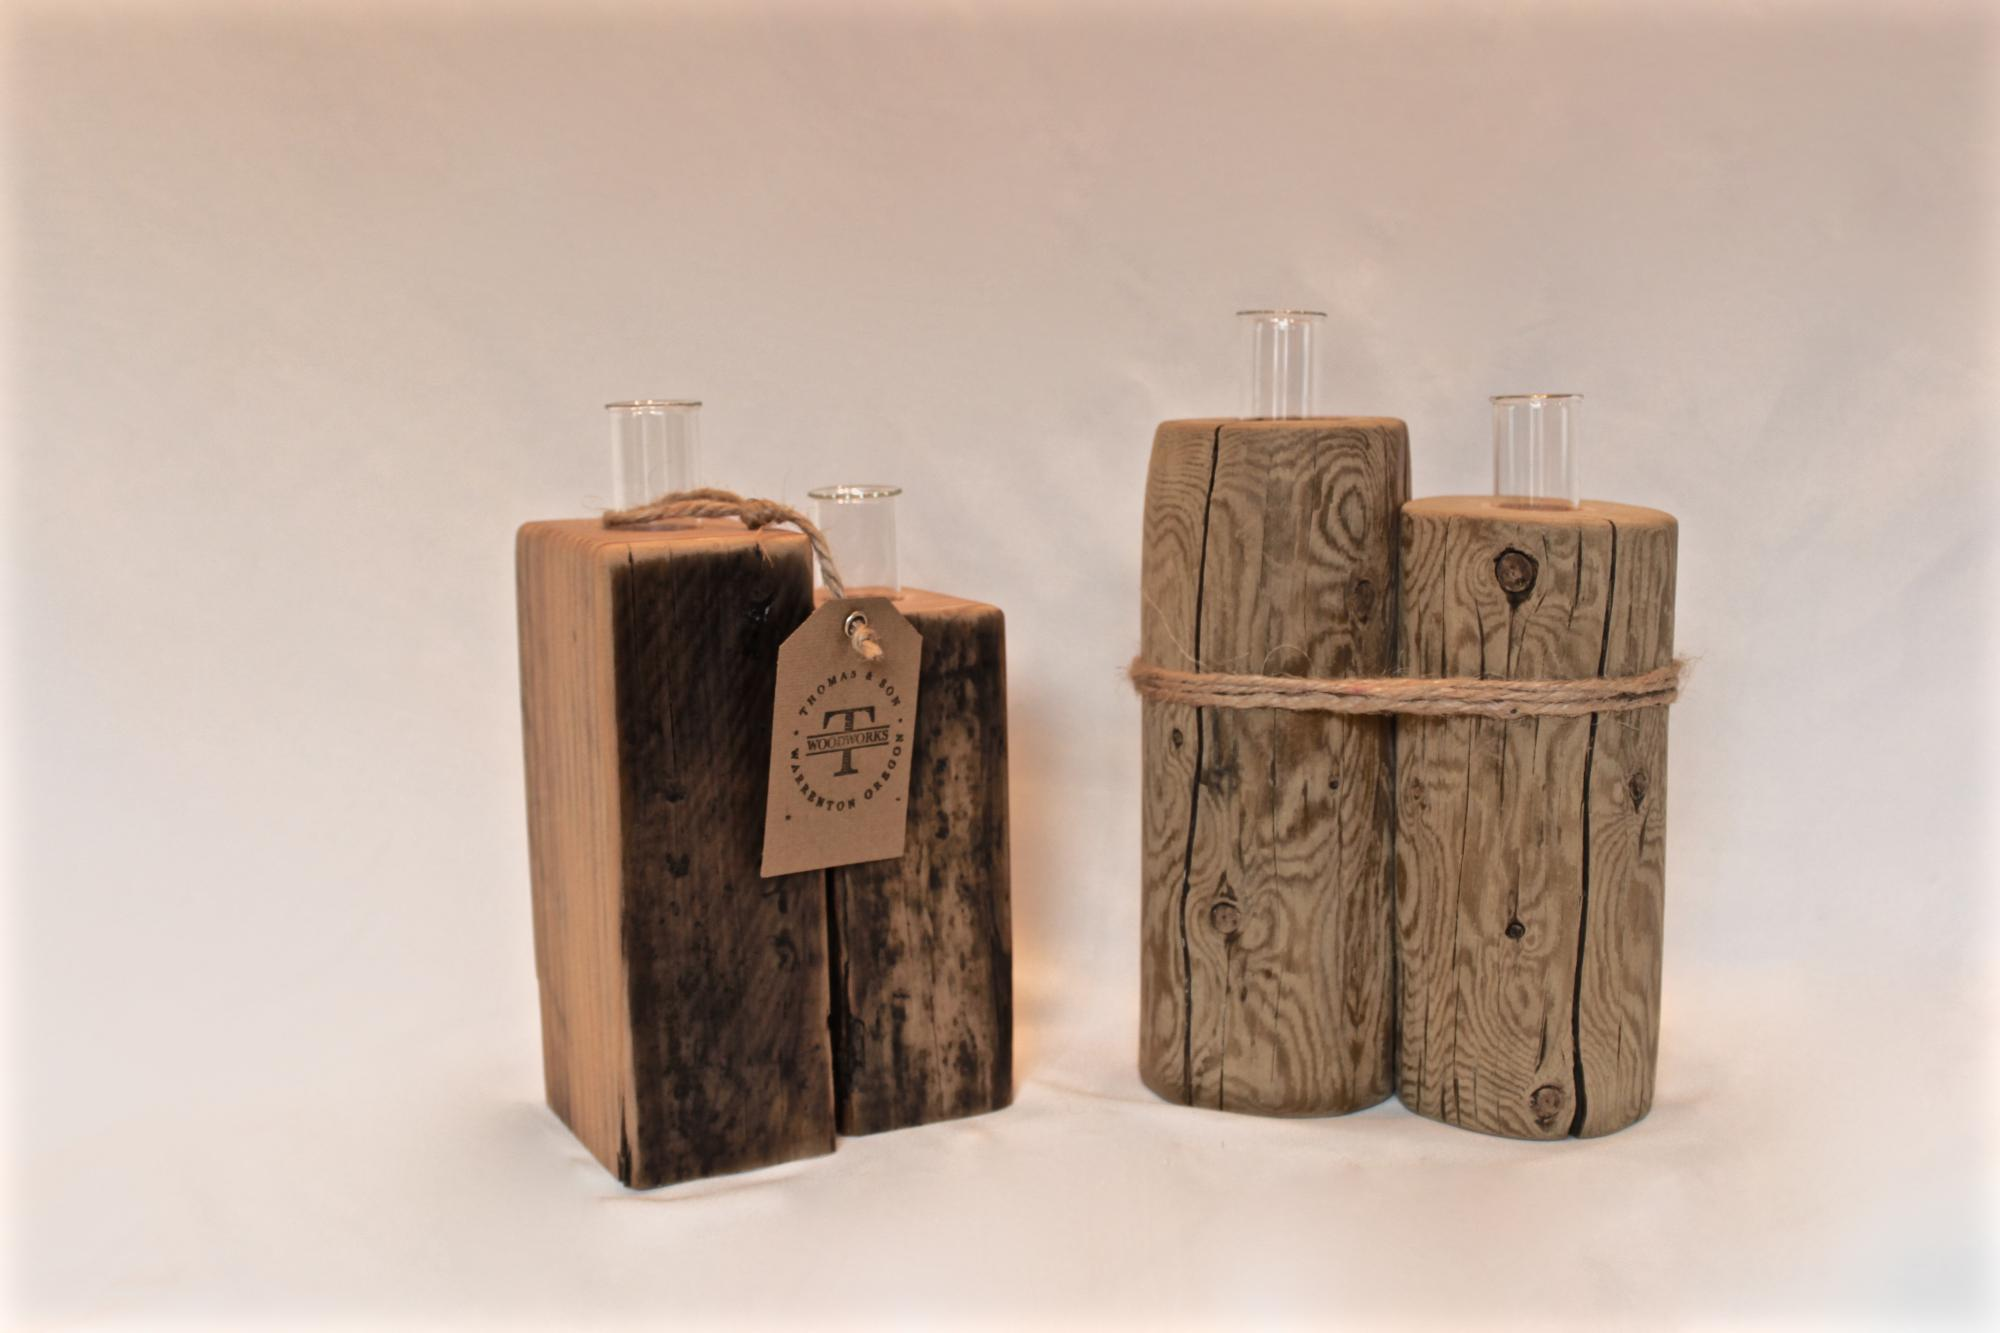 Driftwood test tube vases. $30